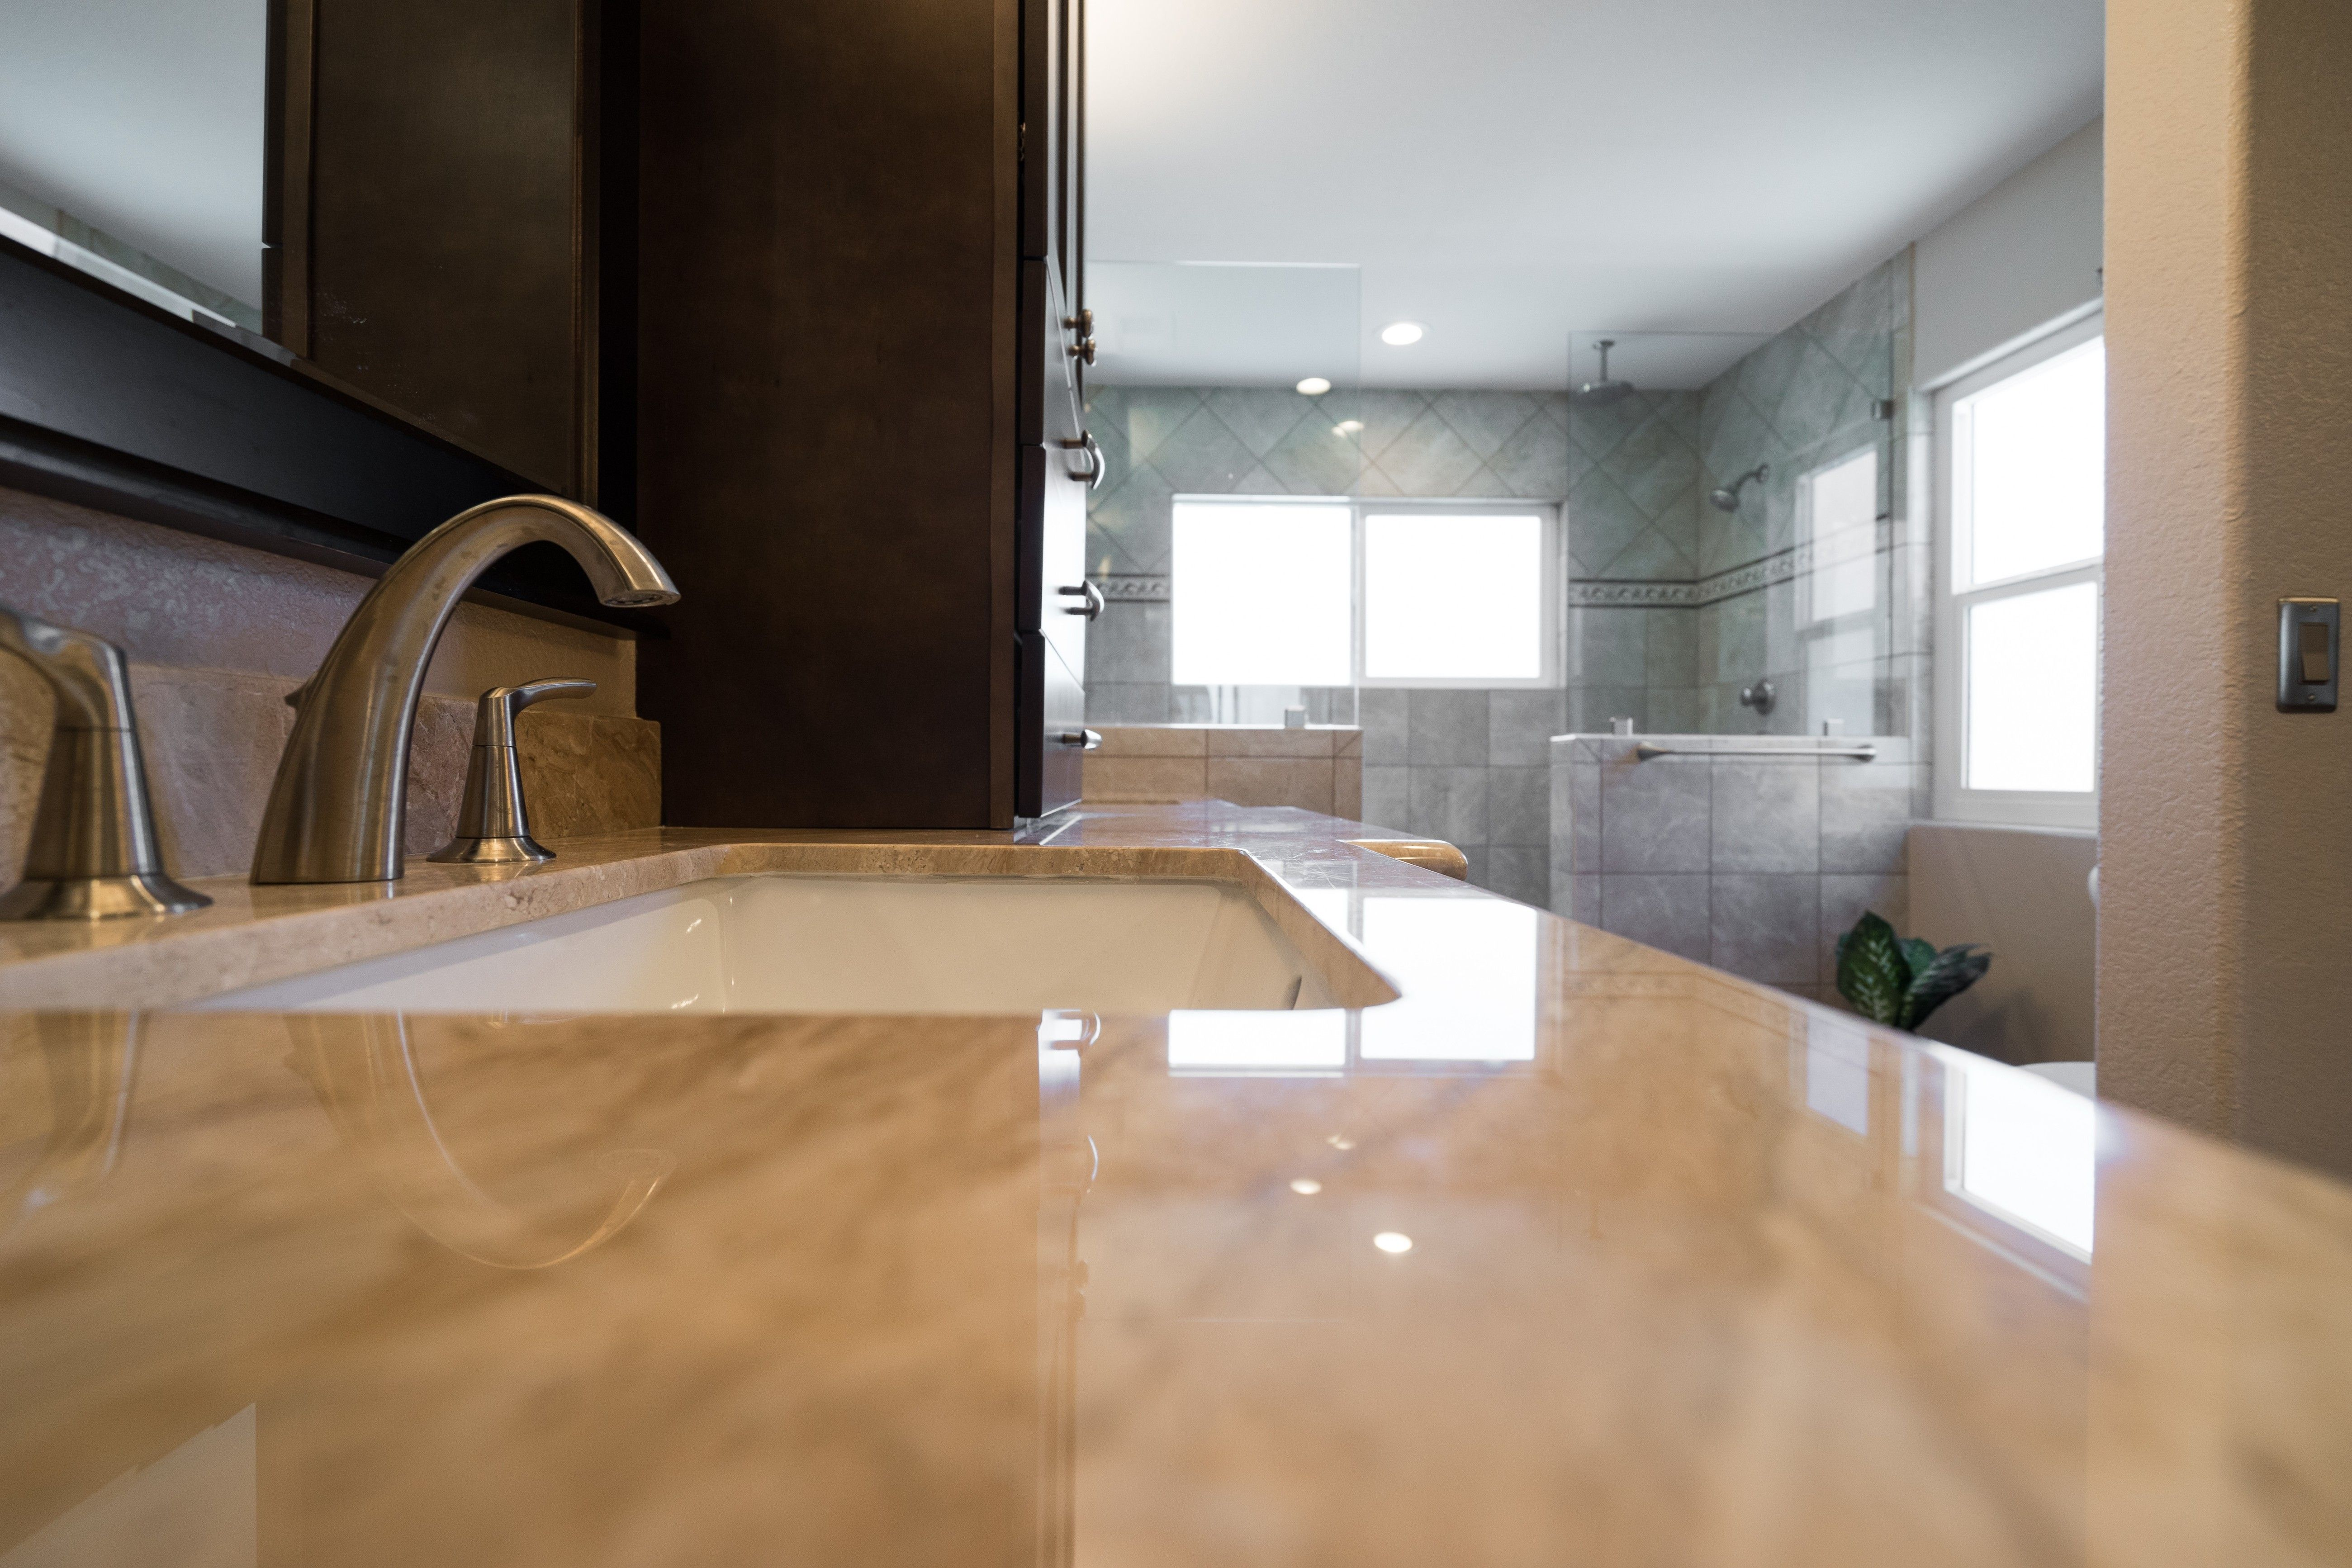 Countertop material can be difficult to pick because of the various selections to choose from. www.choosechi.com